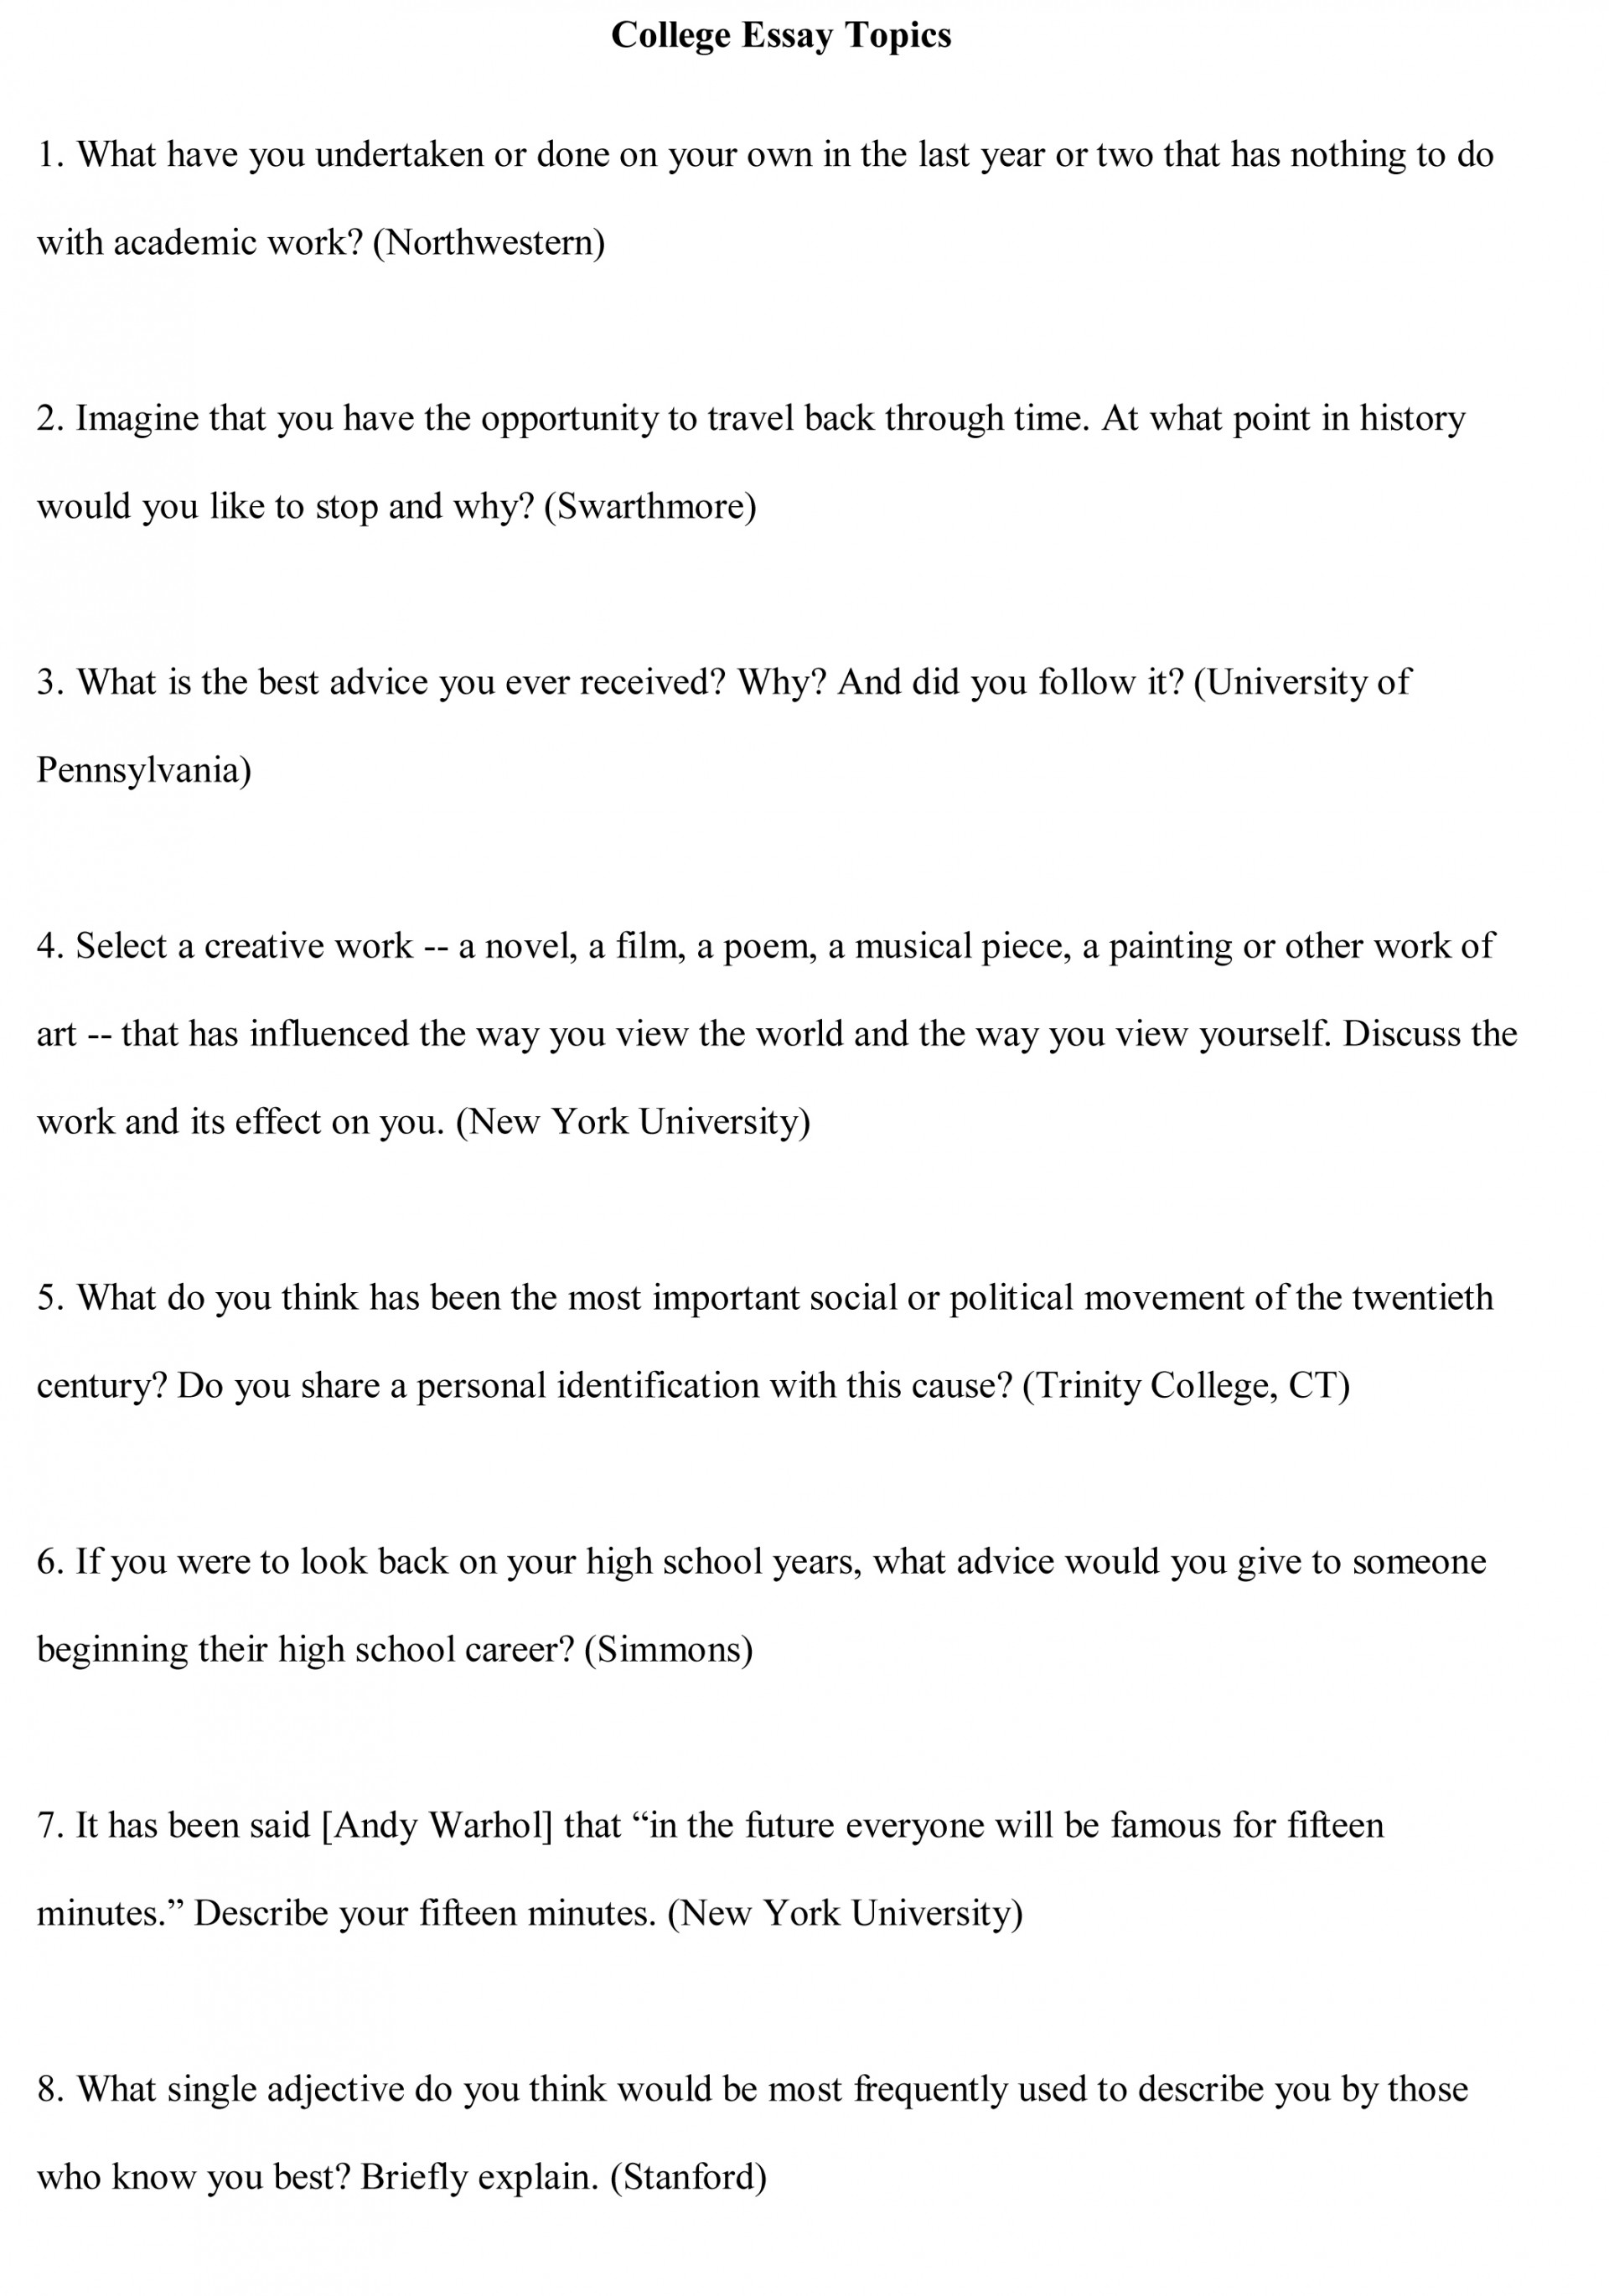 015 Psychology Argumentative Essay Topics Example College Free Staggering Social Related To 1920